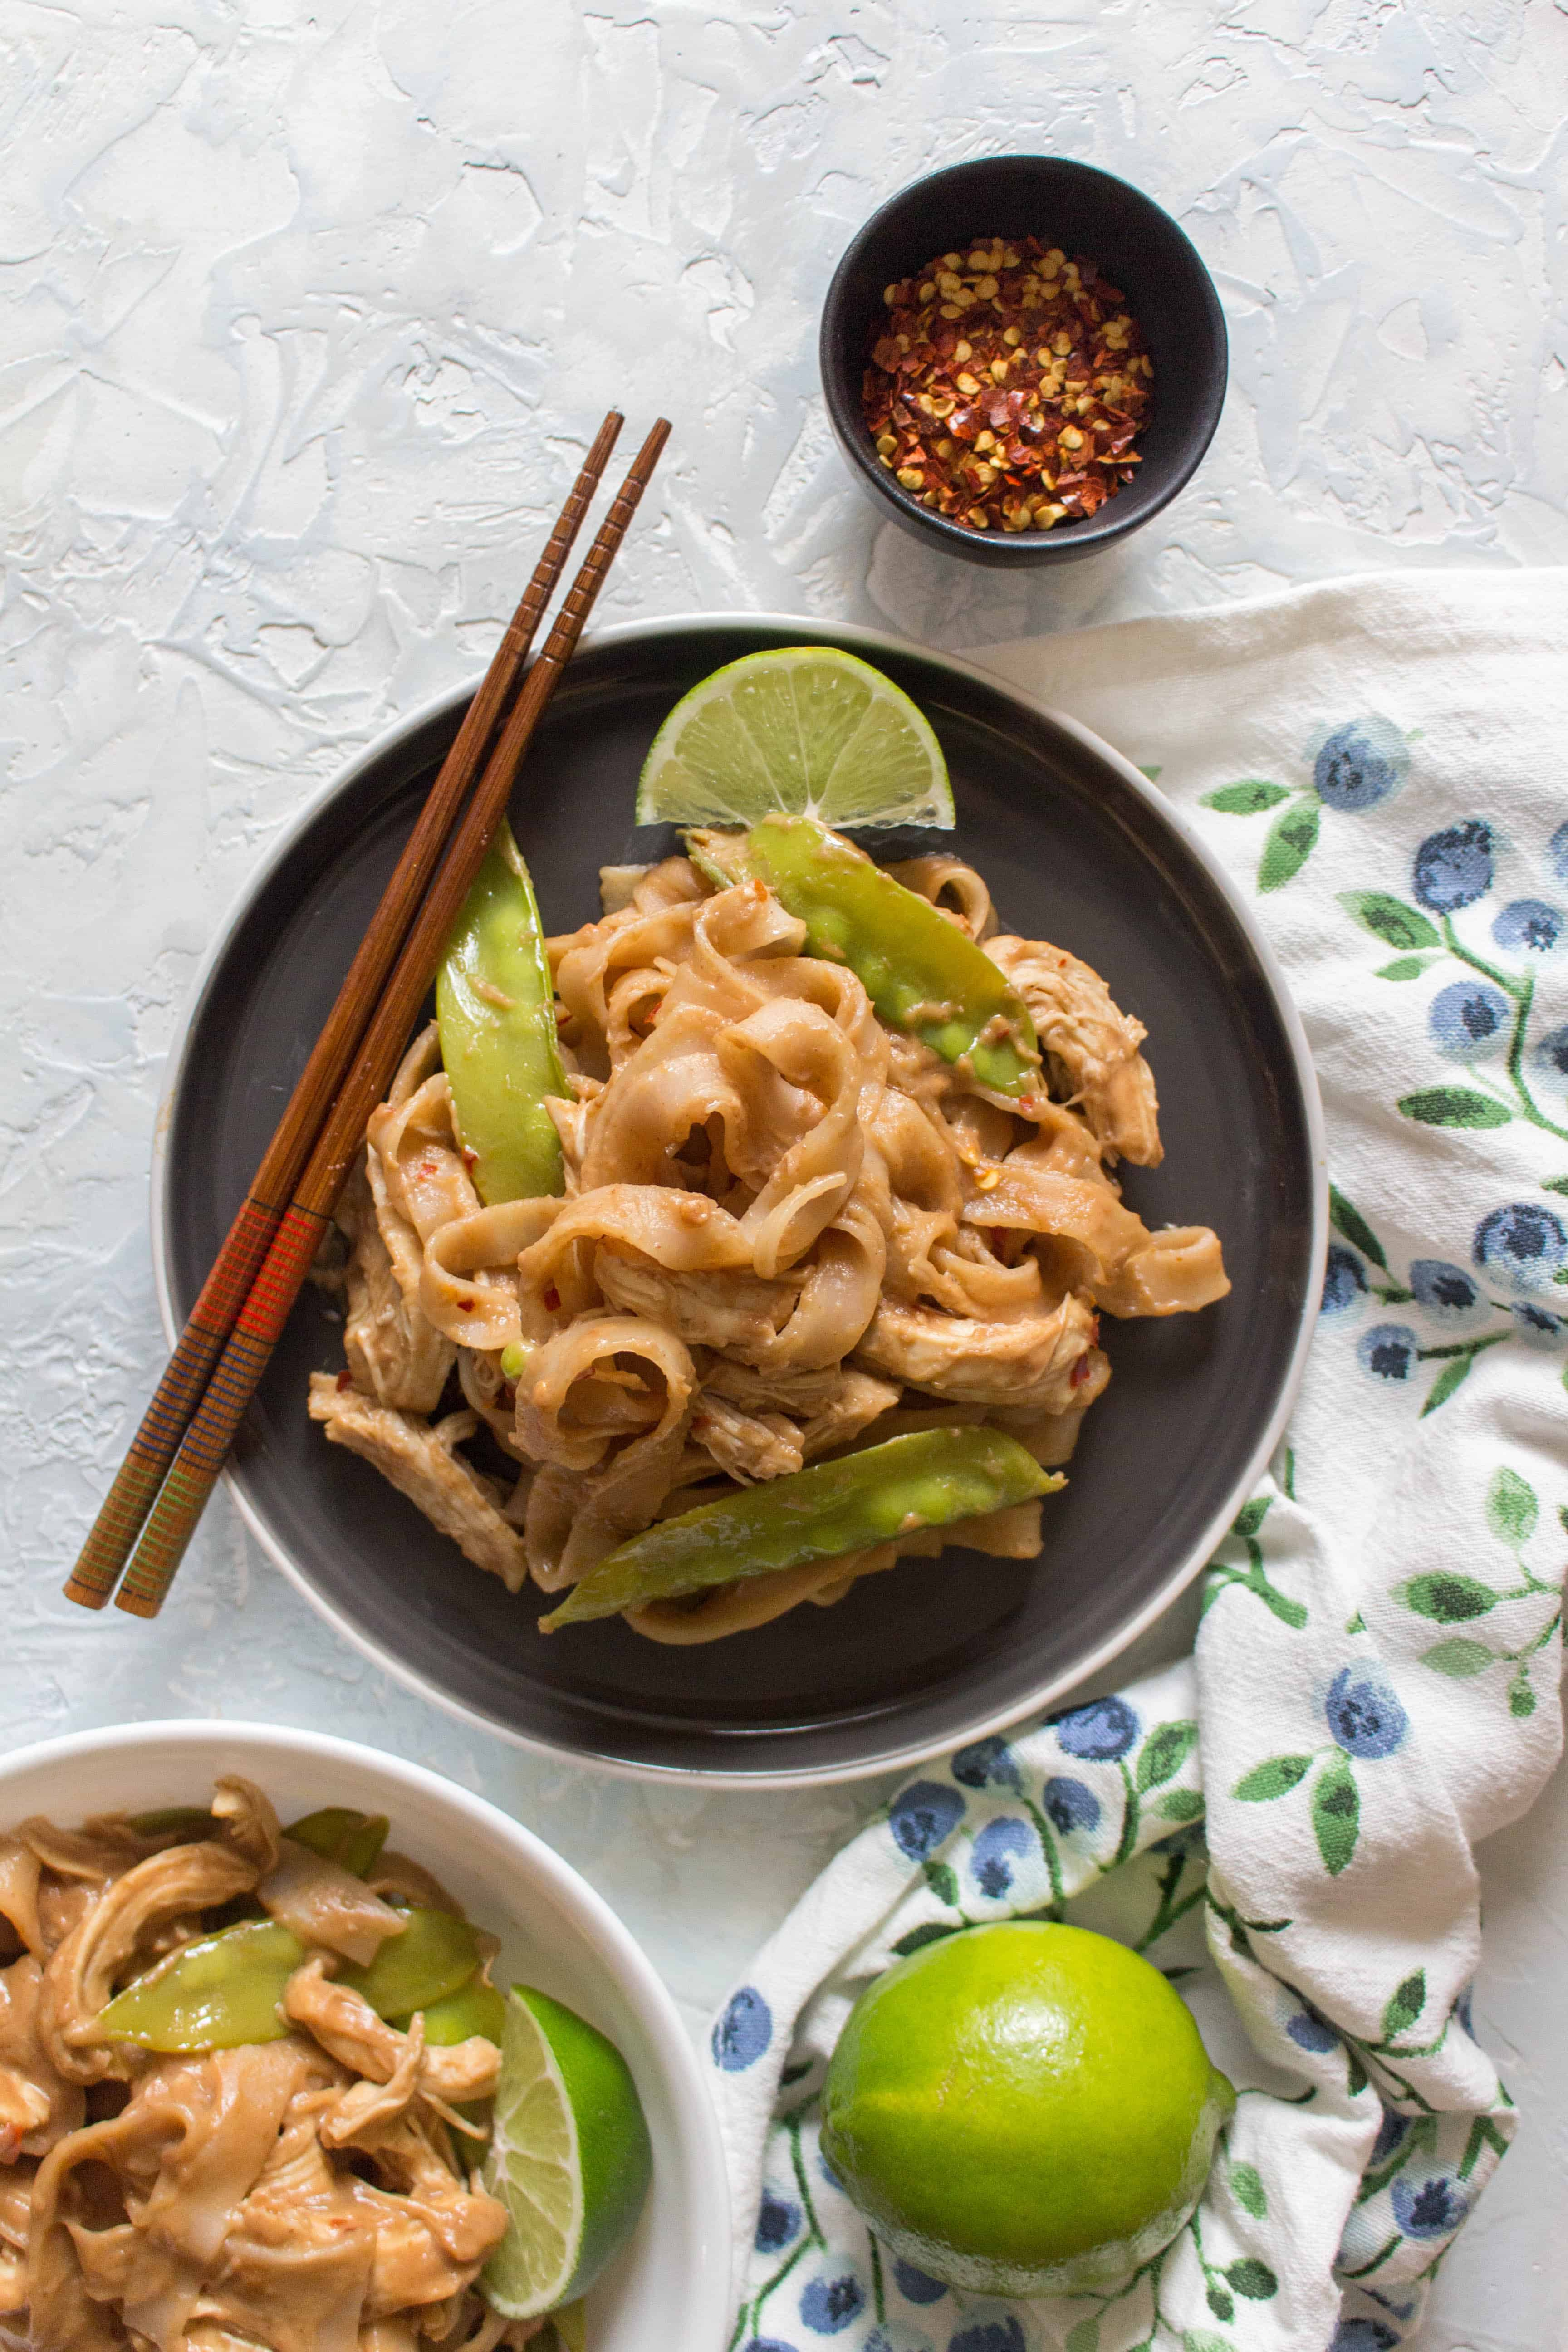 This Healthy Instant Pot Thai Peanut Chicken and Noodles Recipe is the perfect weeknight dinner! This Thai Peanut Chicken and Noodle recipe is so quick, easy, and versatile you're going to want to make all the time! Non-Instant Pot instructions are down below if you don't have an Instant Pot! Video down below!